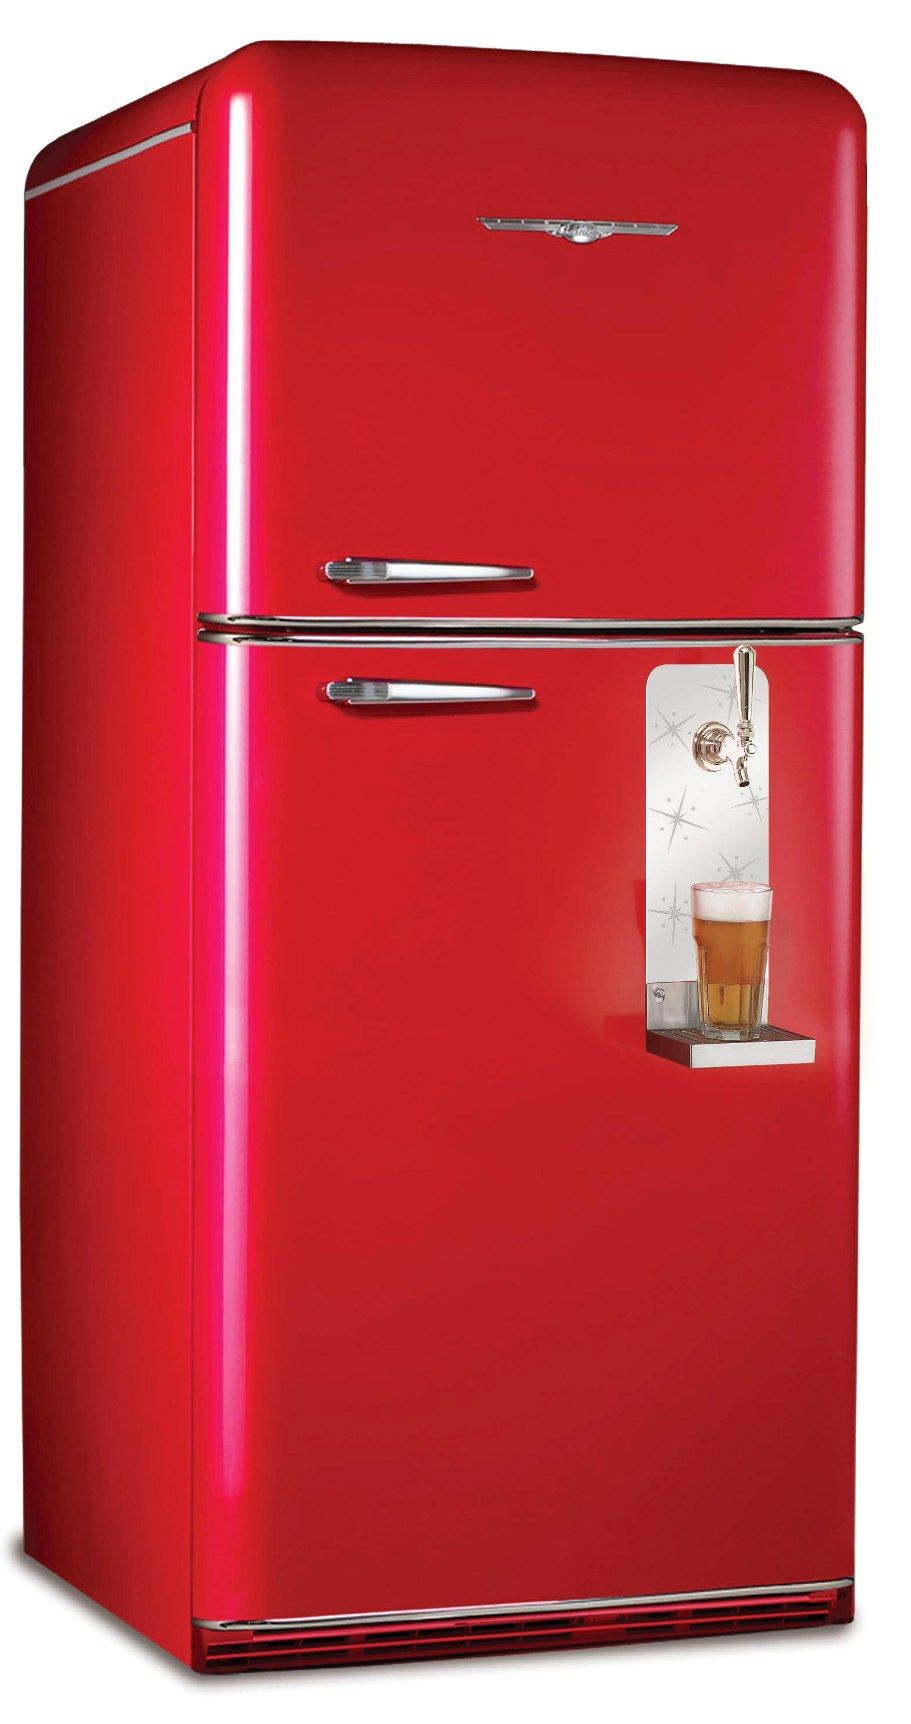 Amazing Modern Fridges Made To Look Like 1950 S Models They Even Have Matching Vintage Stoves Ovens And P Retro Refrigerator Retro Fridge Vintage Appliances